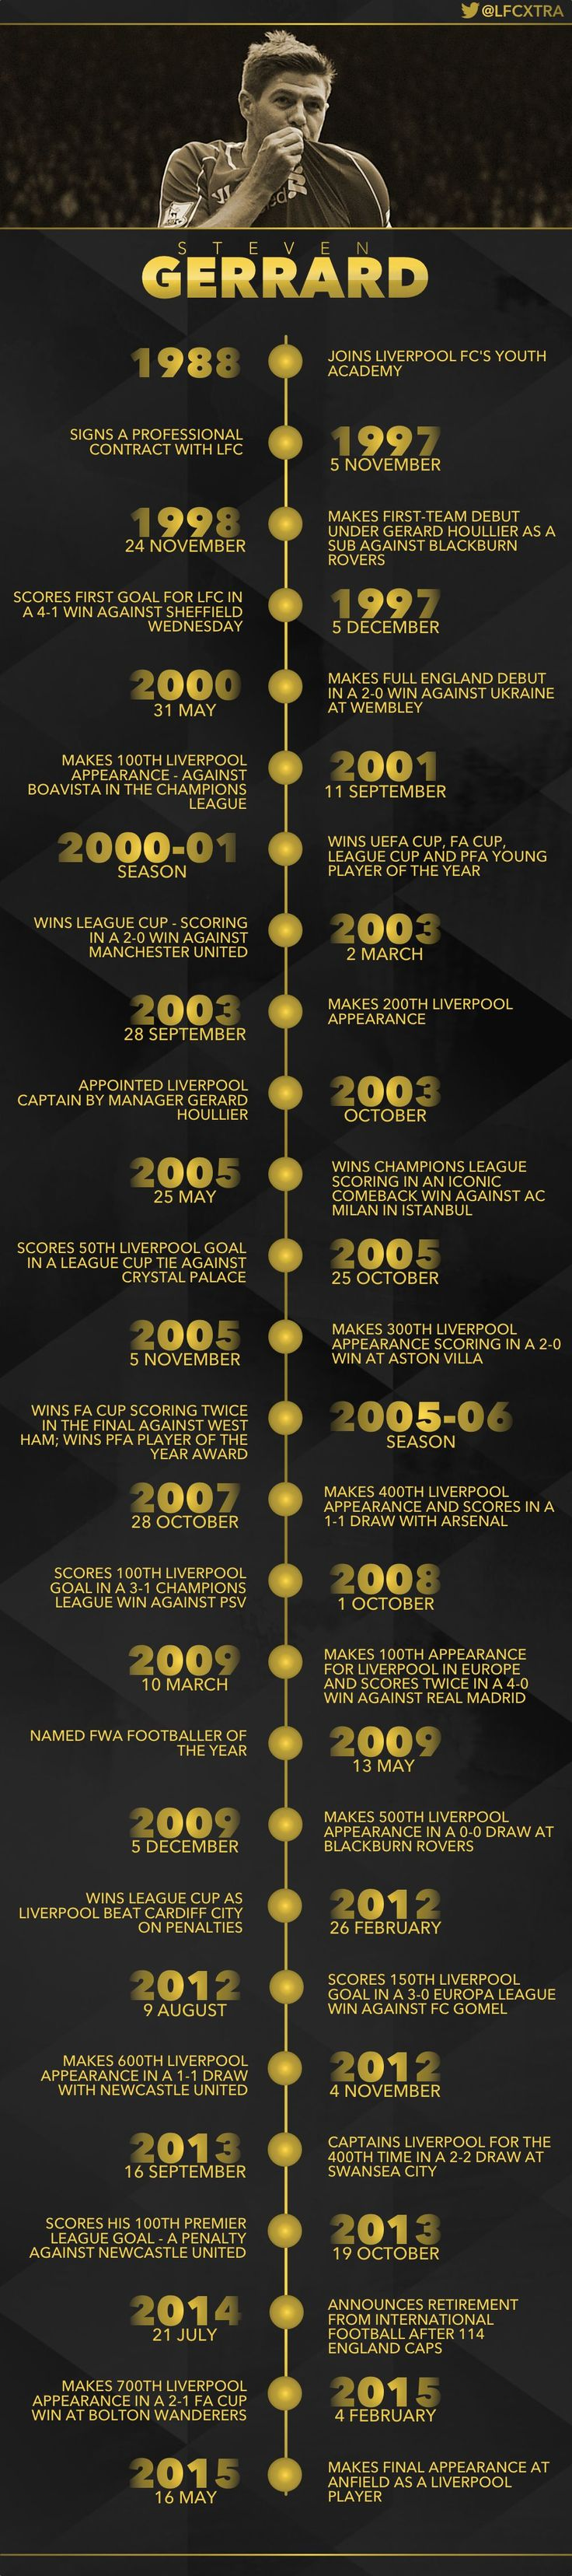 Amazing infographic of Steven Gerrard's Liverpool career - Liverpool FC